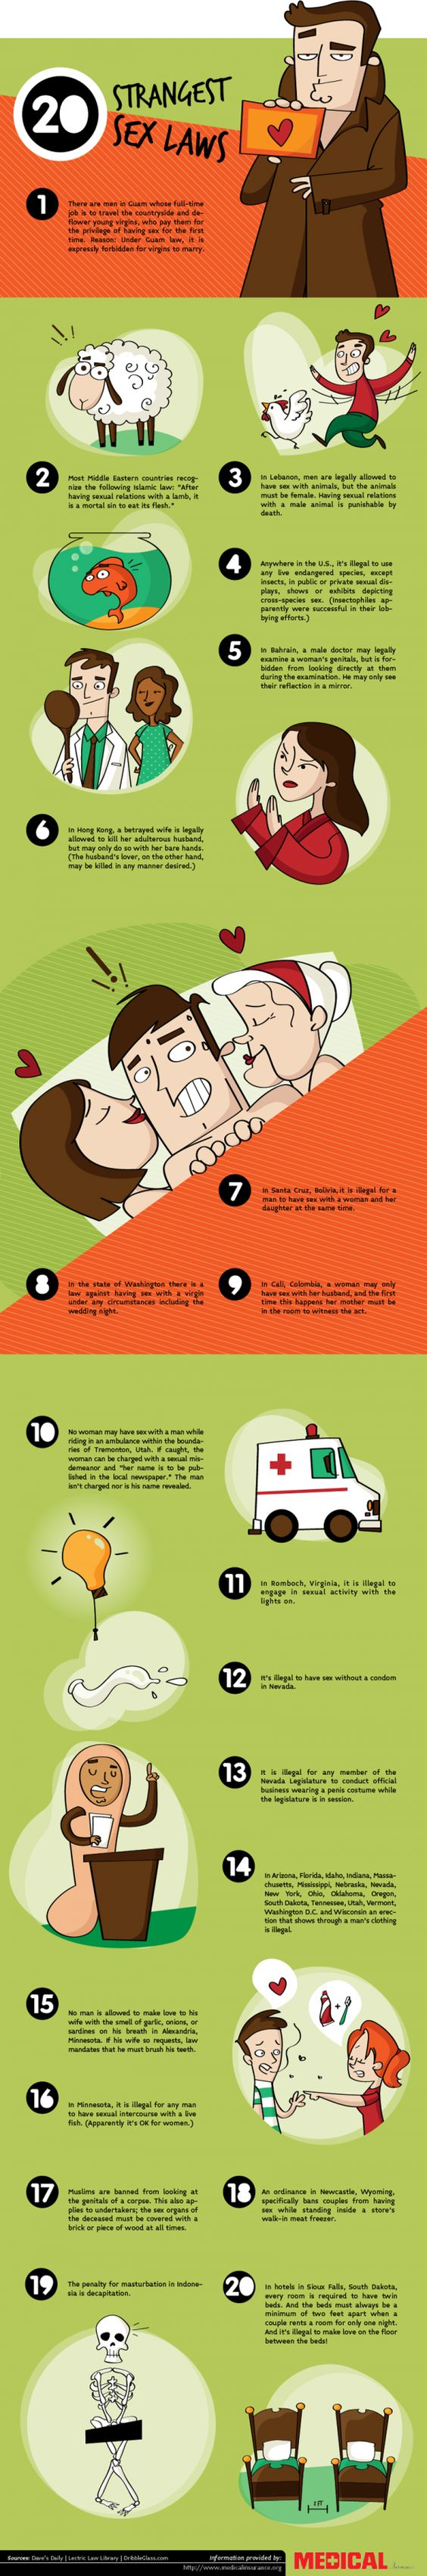 Strange & Funny Sex Laws Infographic: